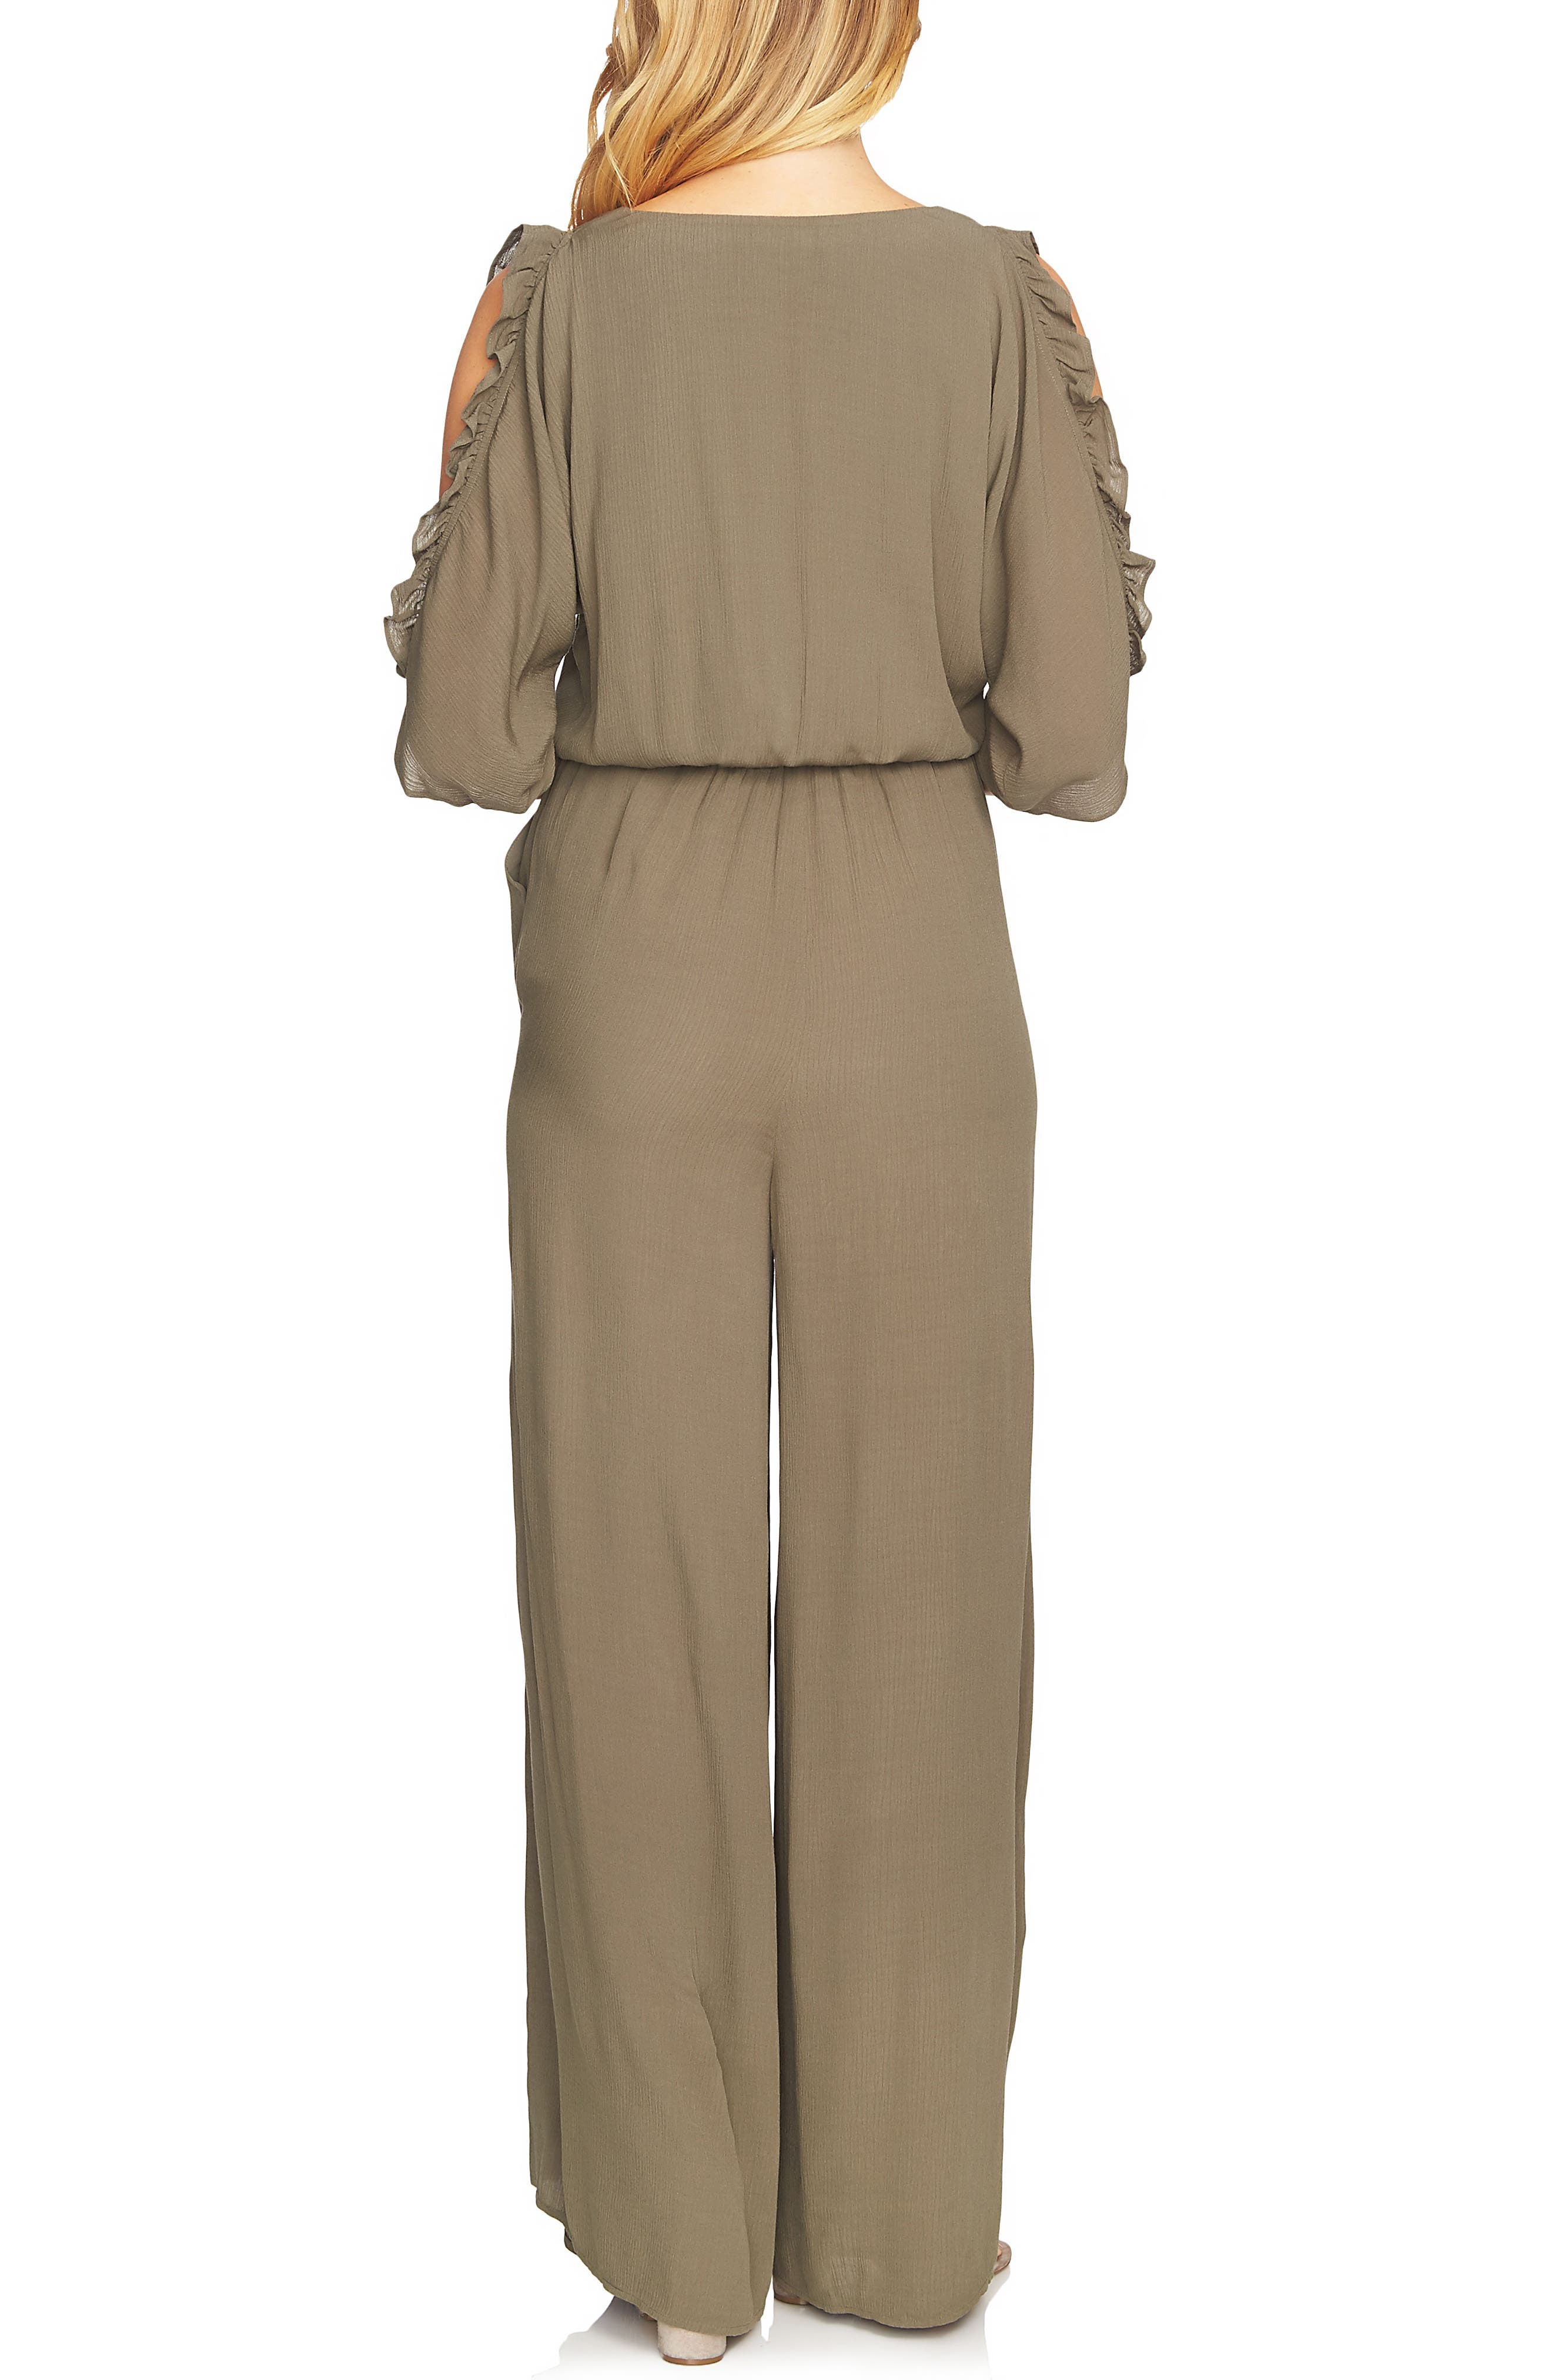 Ruffle Sleeve Wide Leg Jumpsuit,                             Alternate thumbnail 2, color,                             Dusty Olive